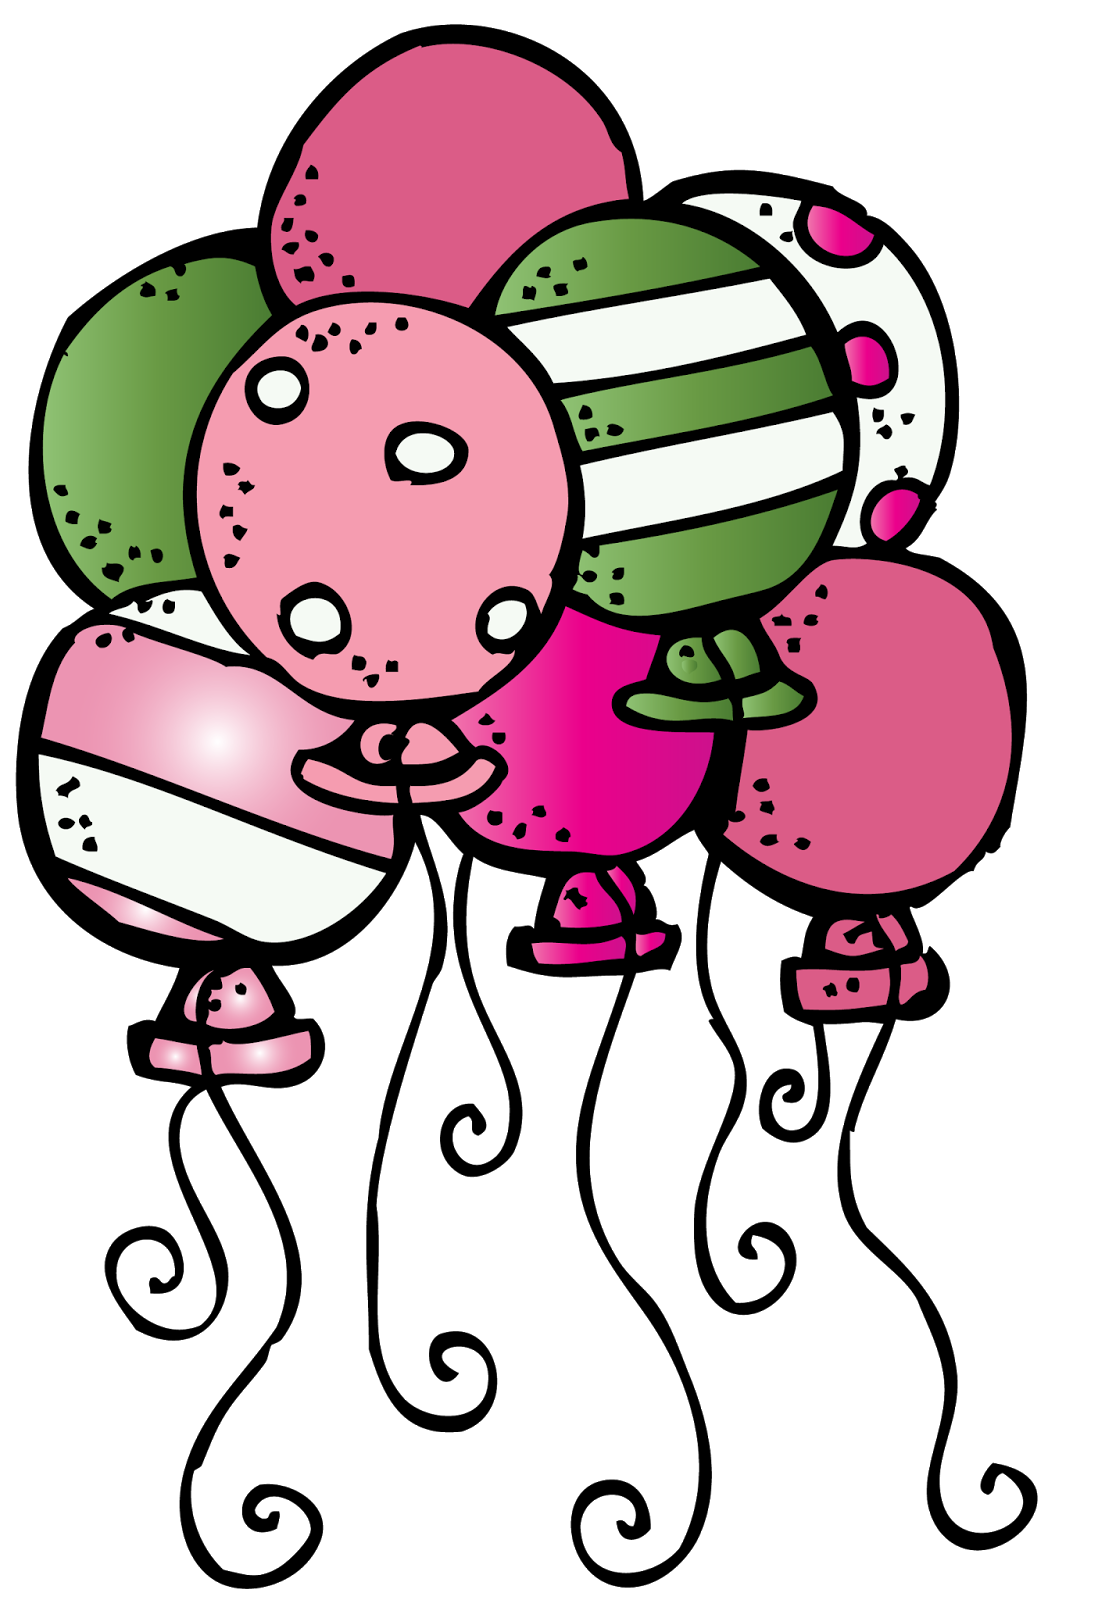 Googlr drawing fun. Cliparts for free